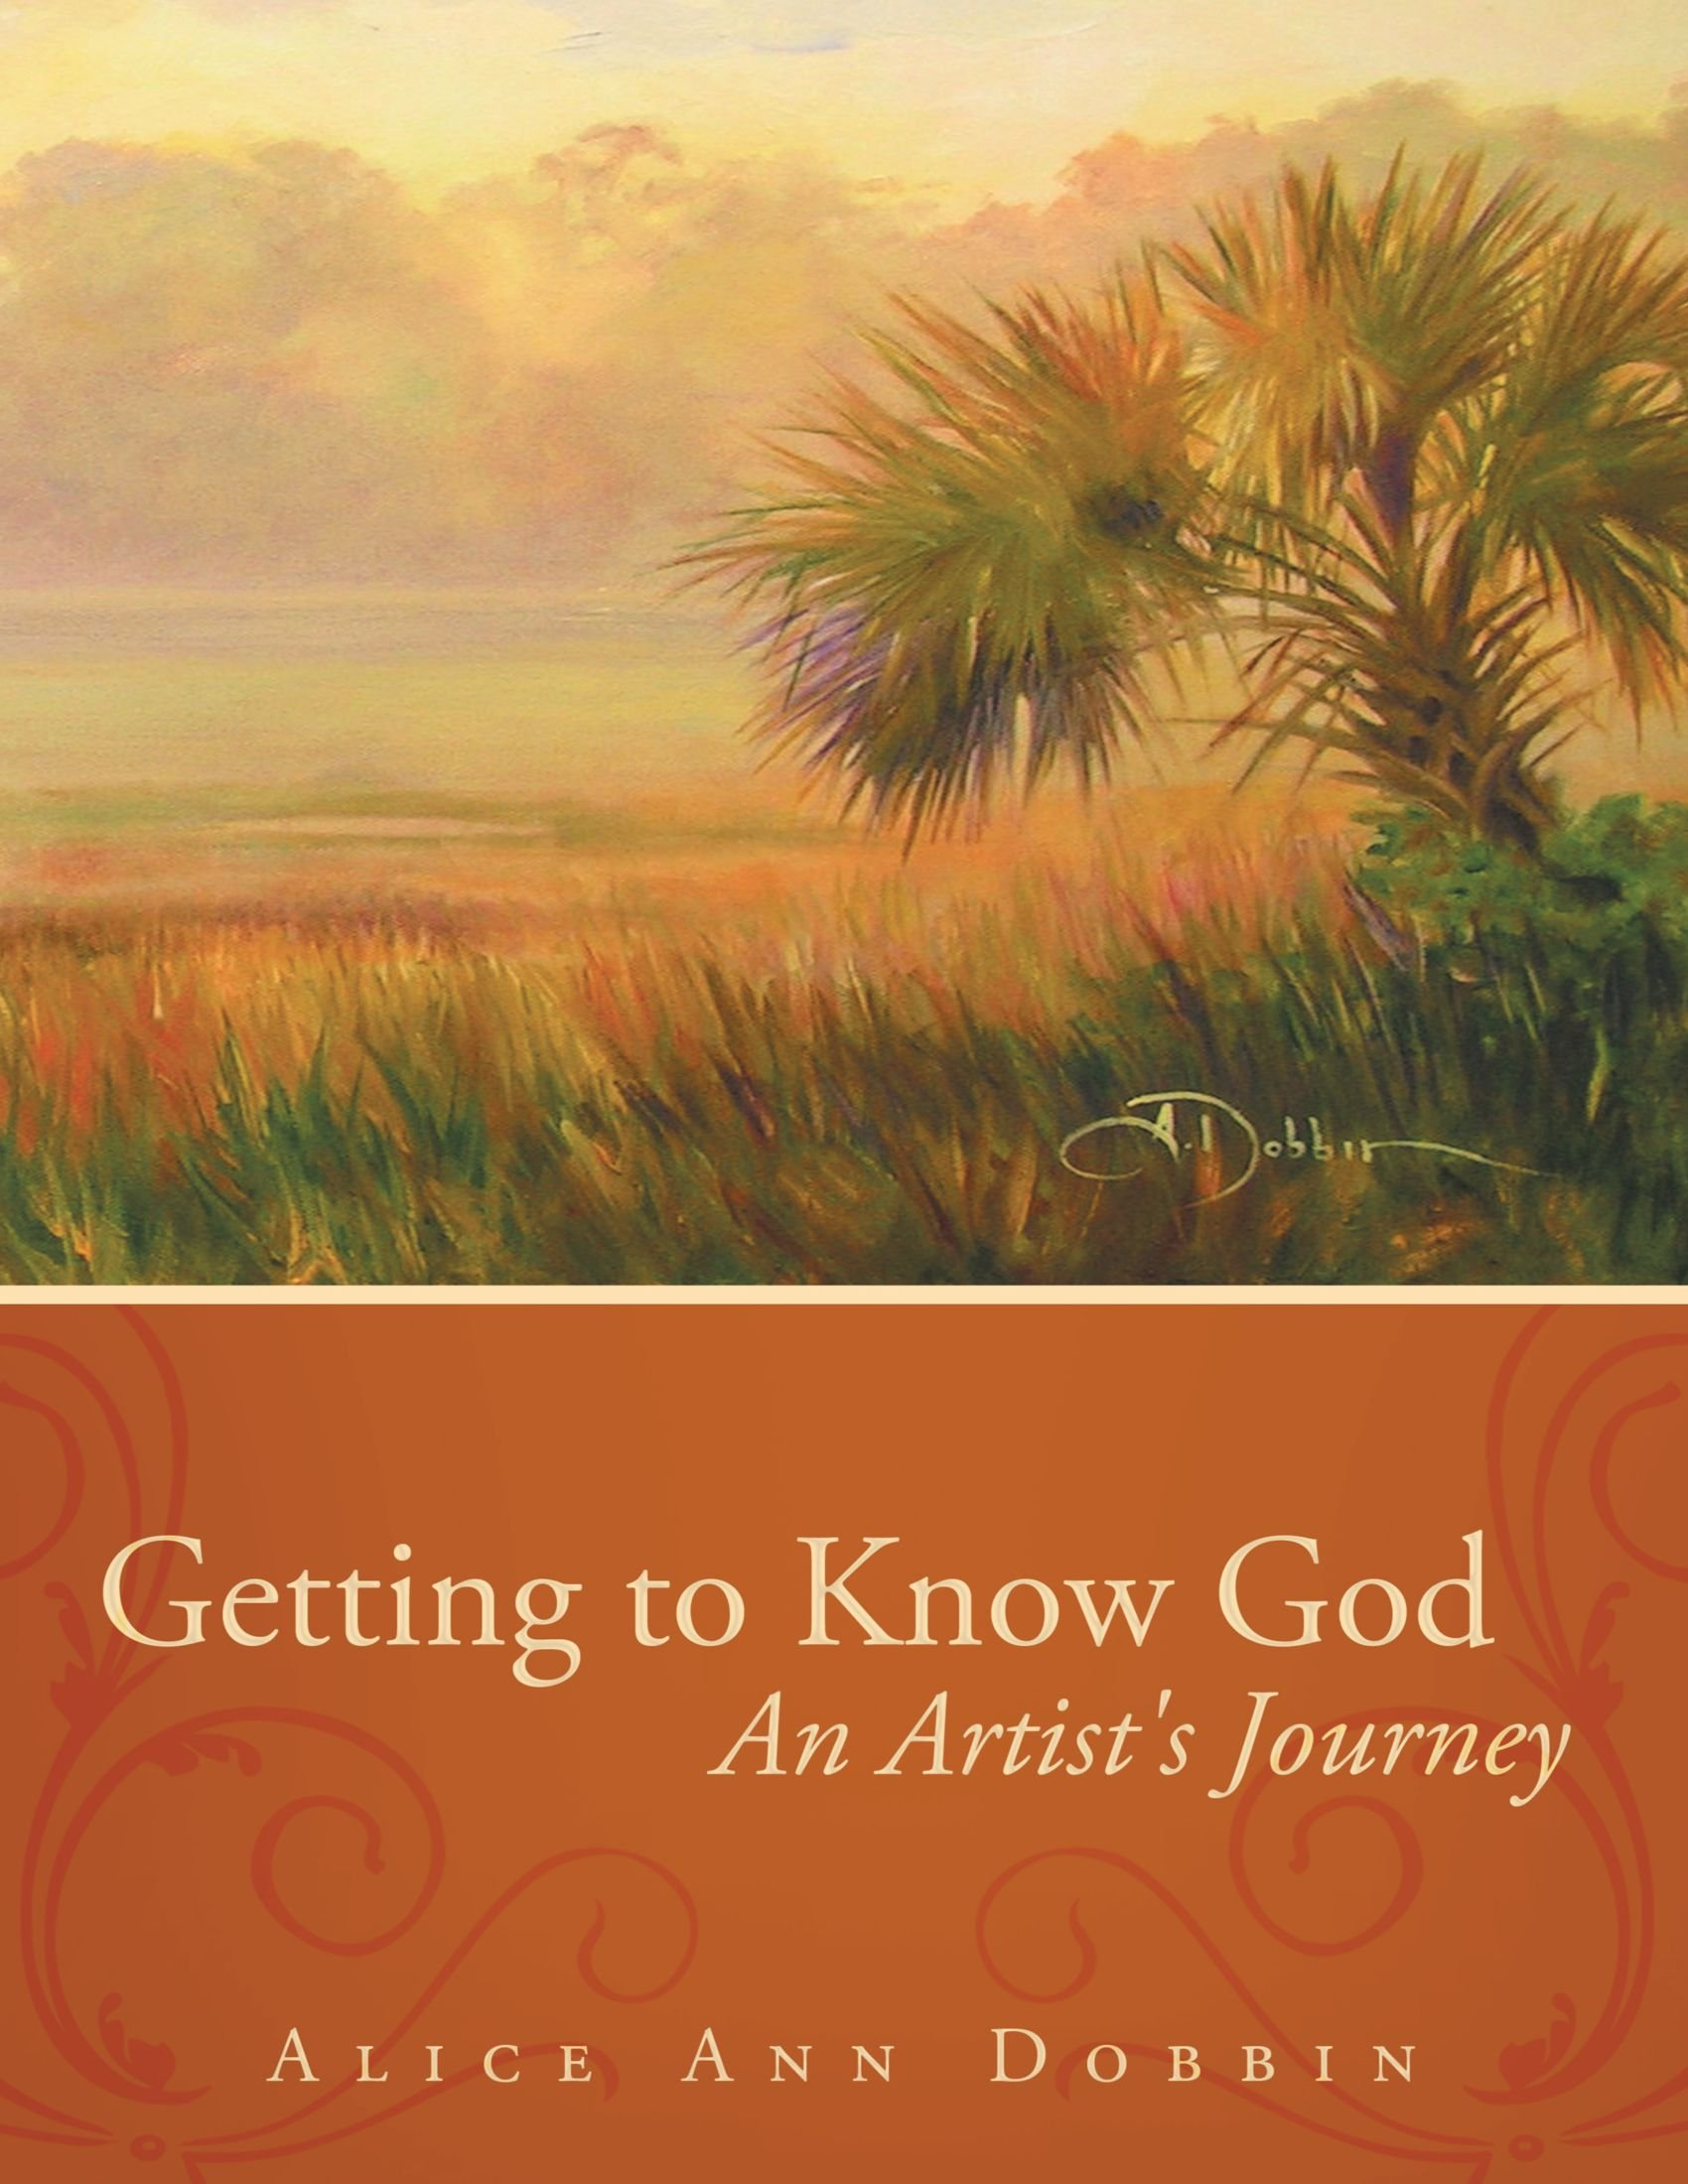 Getting to Know God: An Artist's Journey pdf